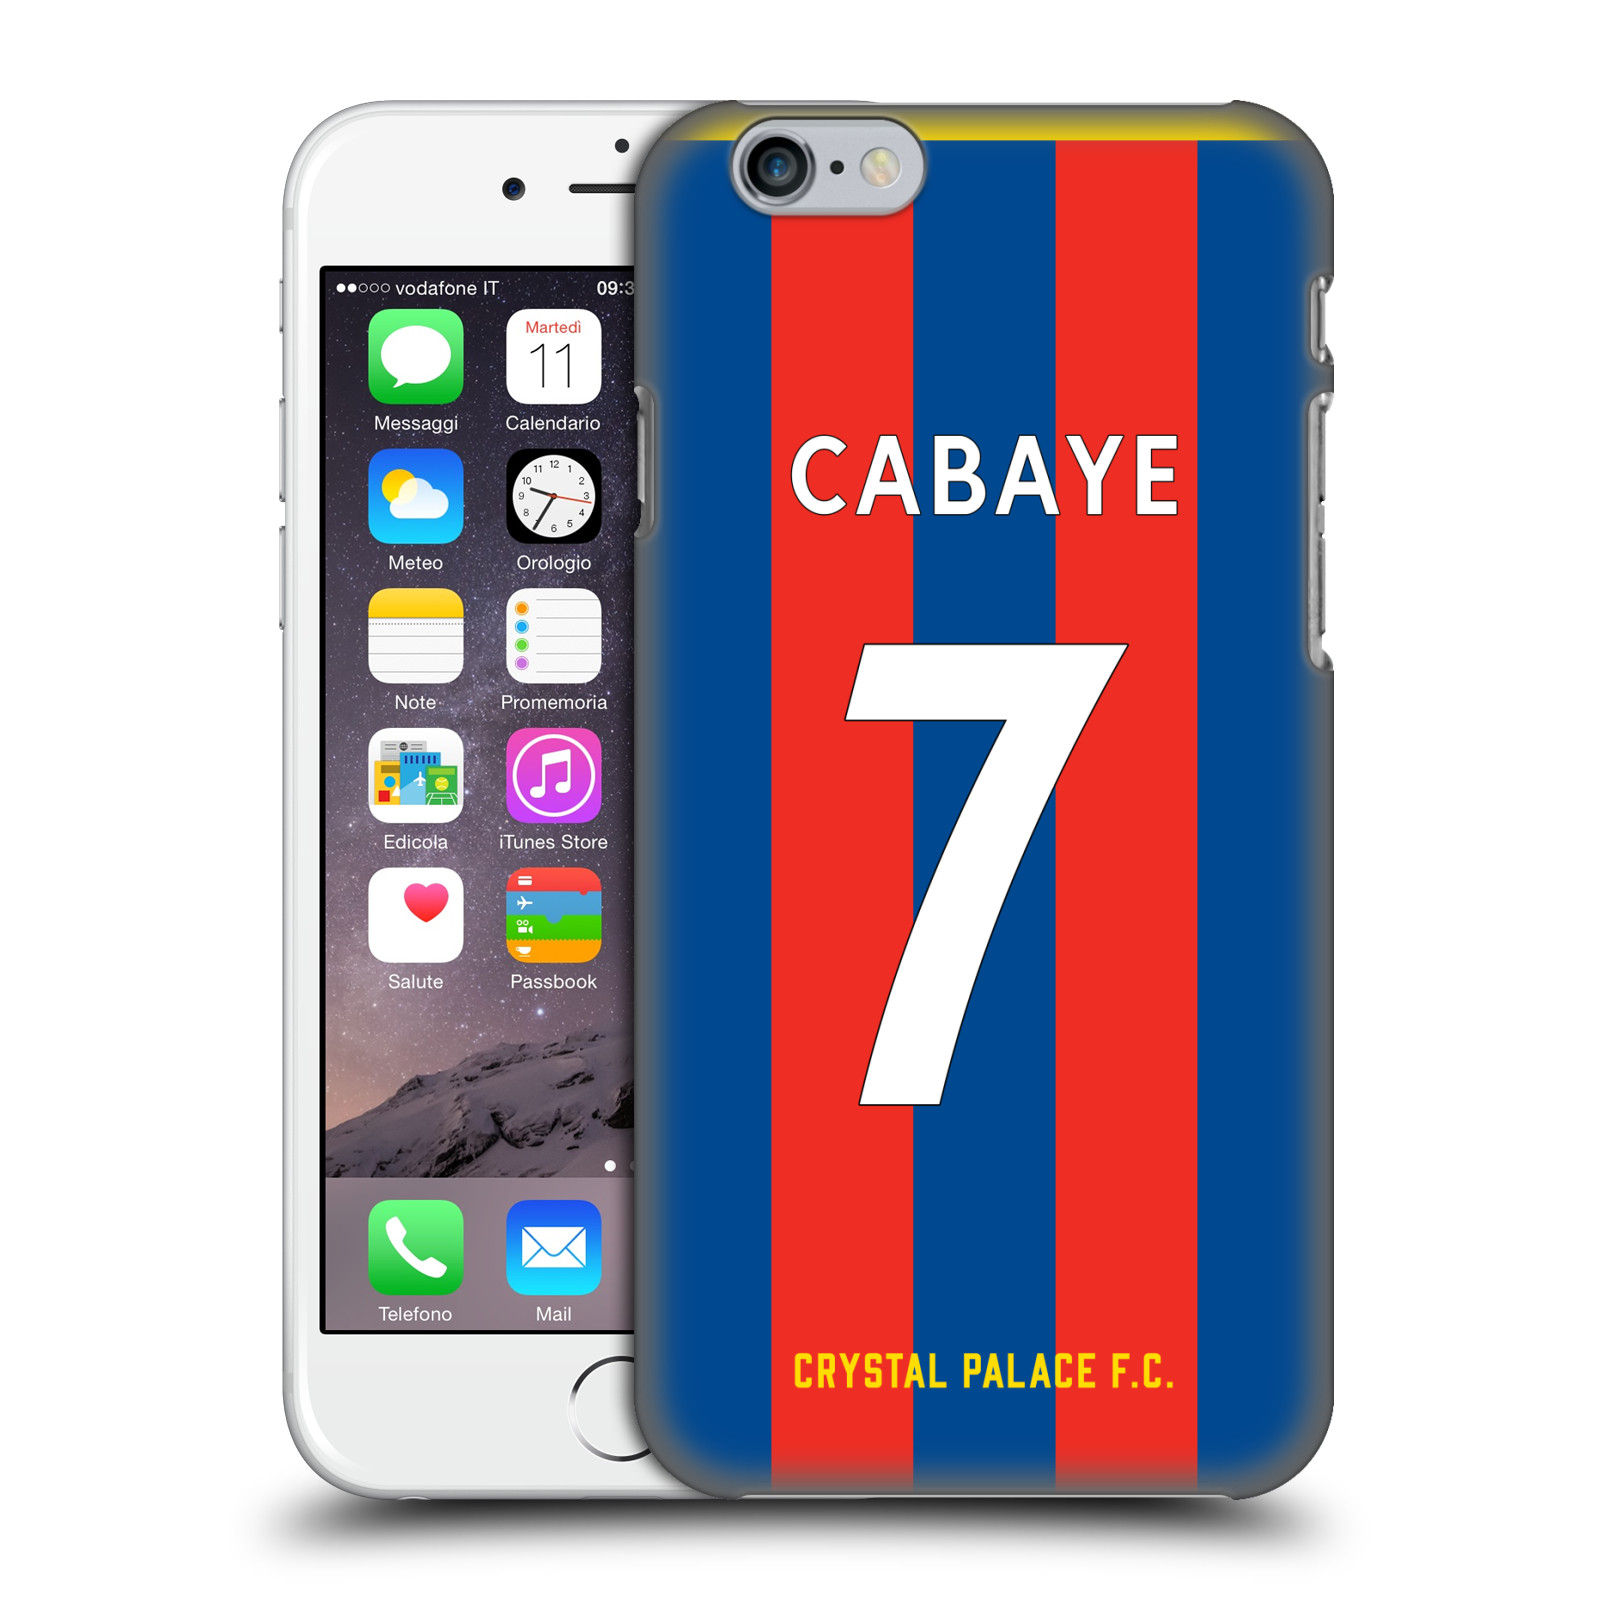 CRYSTAL-PALACE-FC-2017-18-GIOCATORI-KIT-IN-CASA-1-CASE-PER-APPLE-iPHONE-TELEFONI